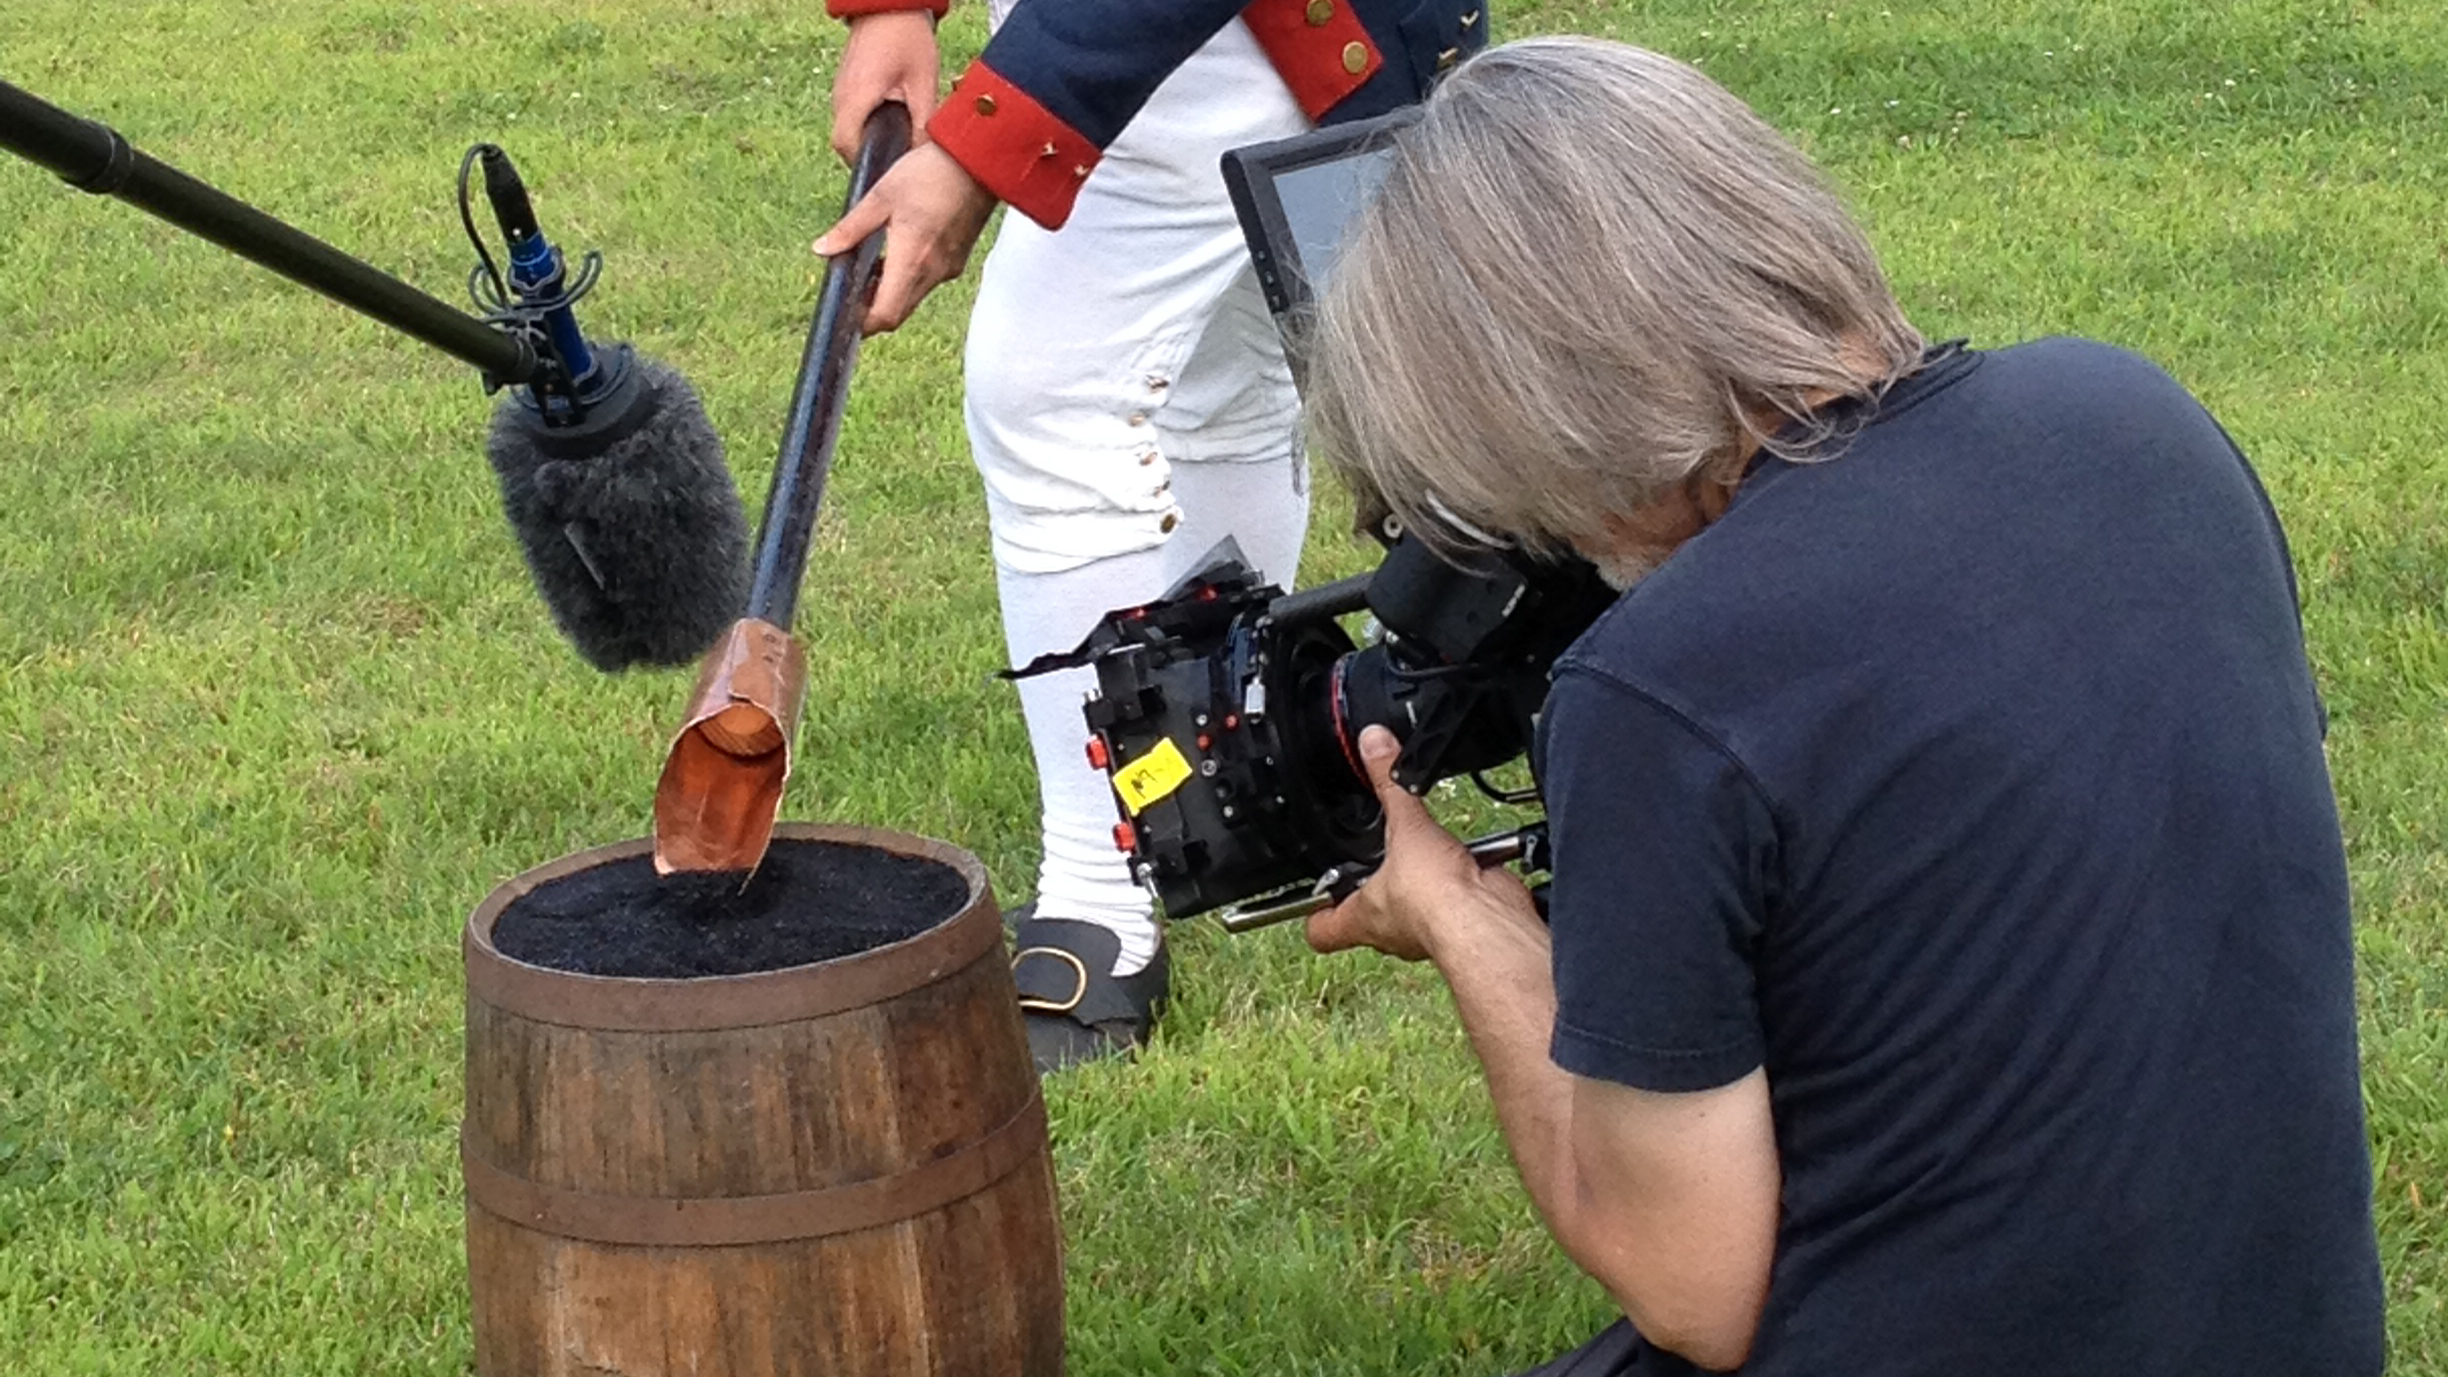 filming gathering black powder for cannon charge